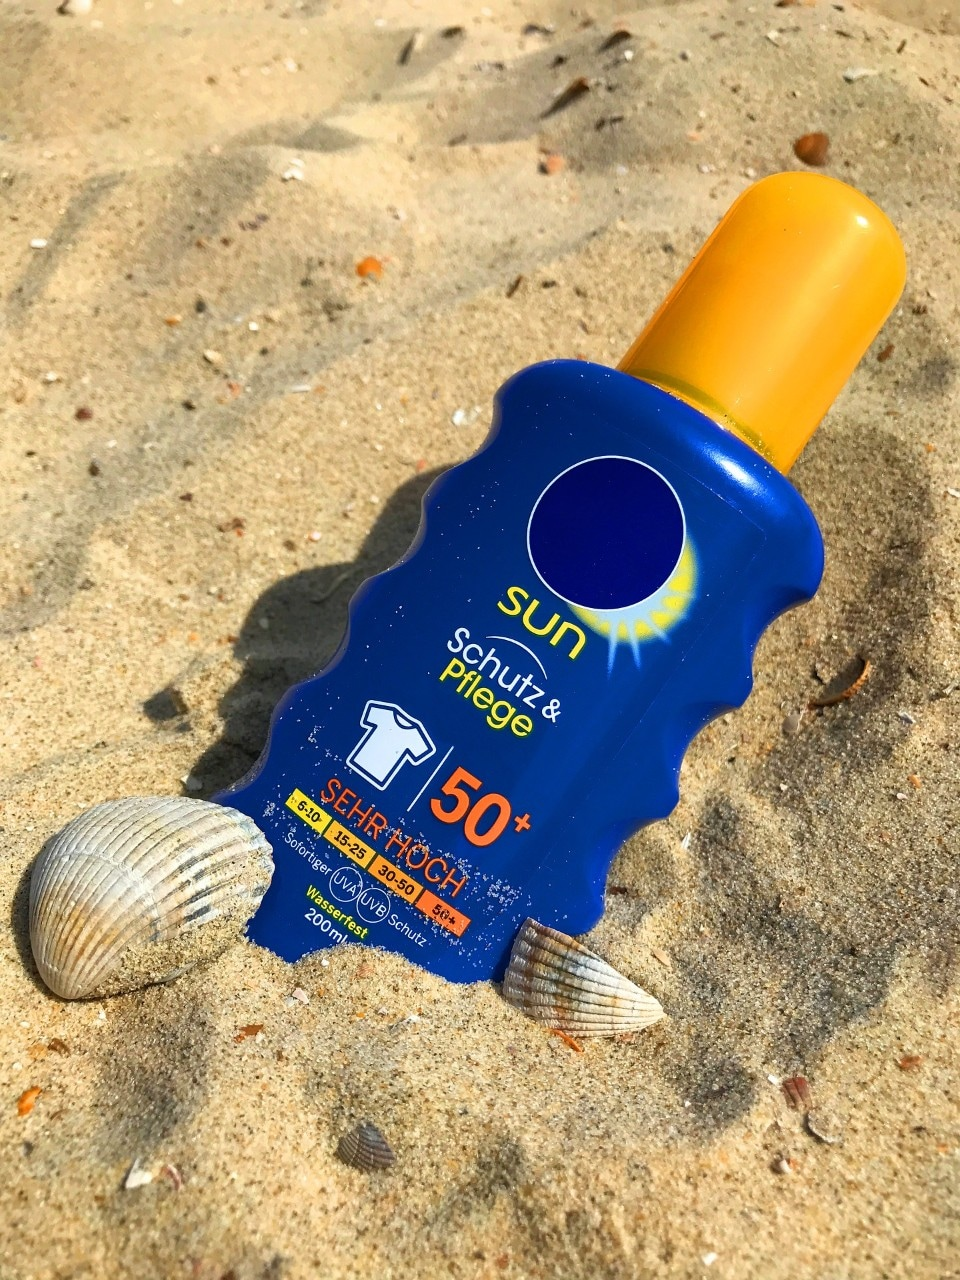 Sunblock in the sand with 'SPF 15' and 'UVA and UVB protection' on the label.